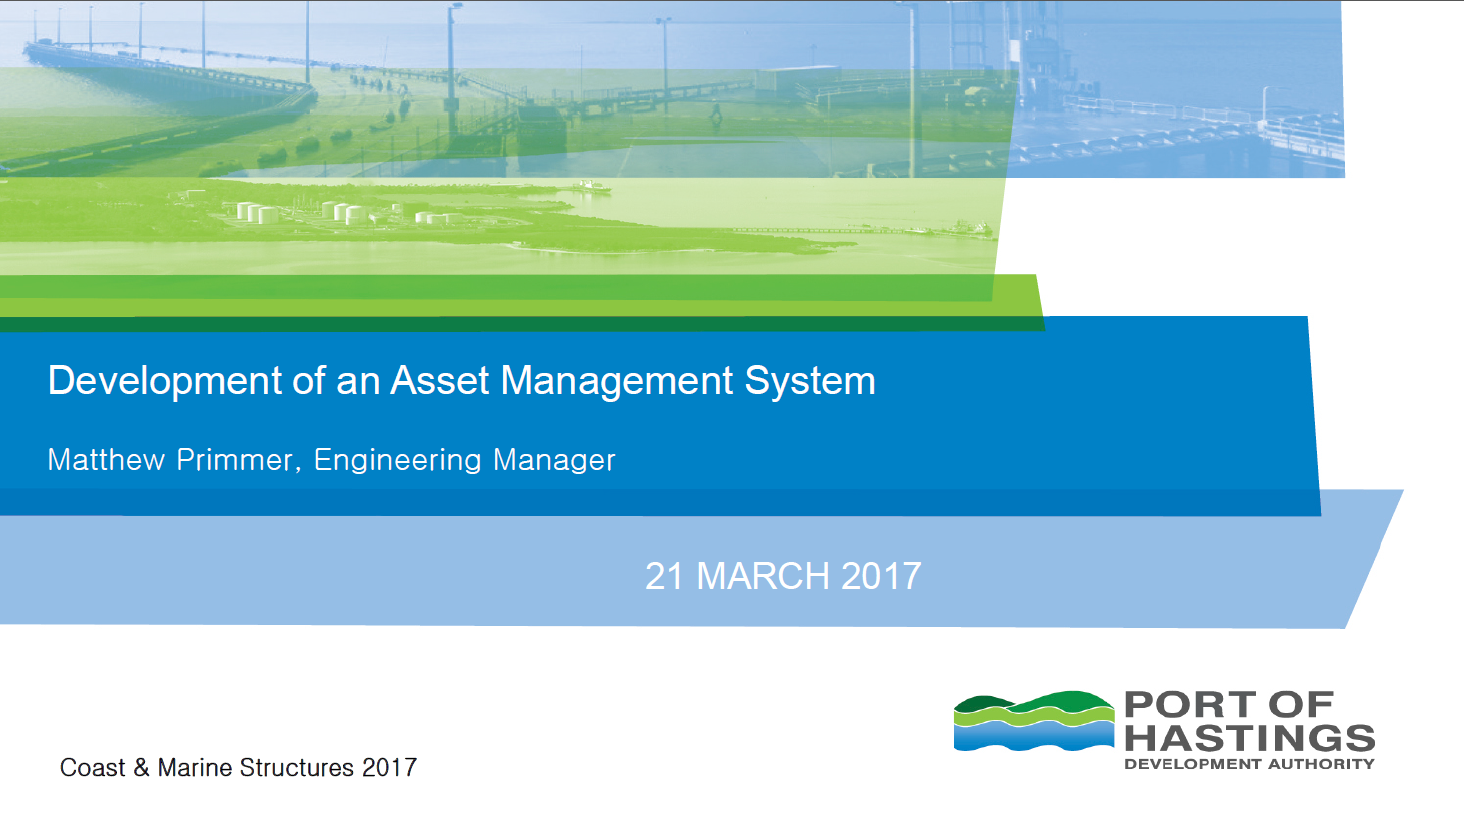 Developing an Asset Management System